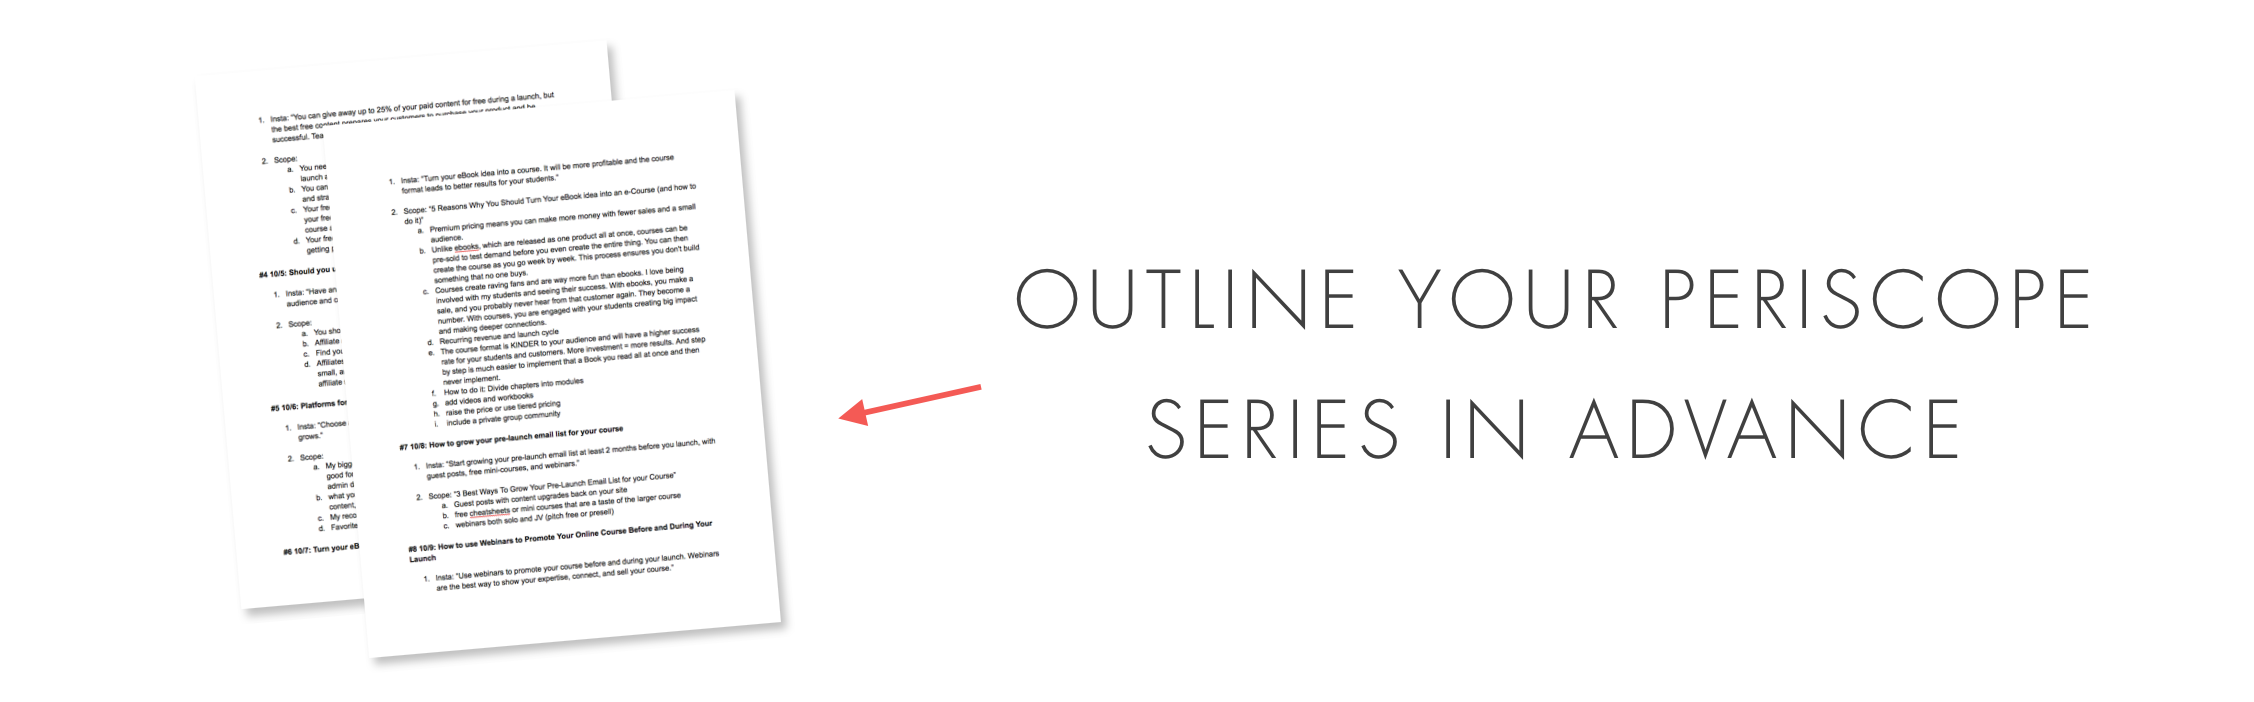 outline your series in advance.